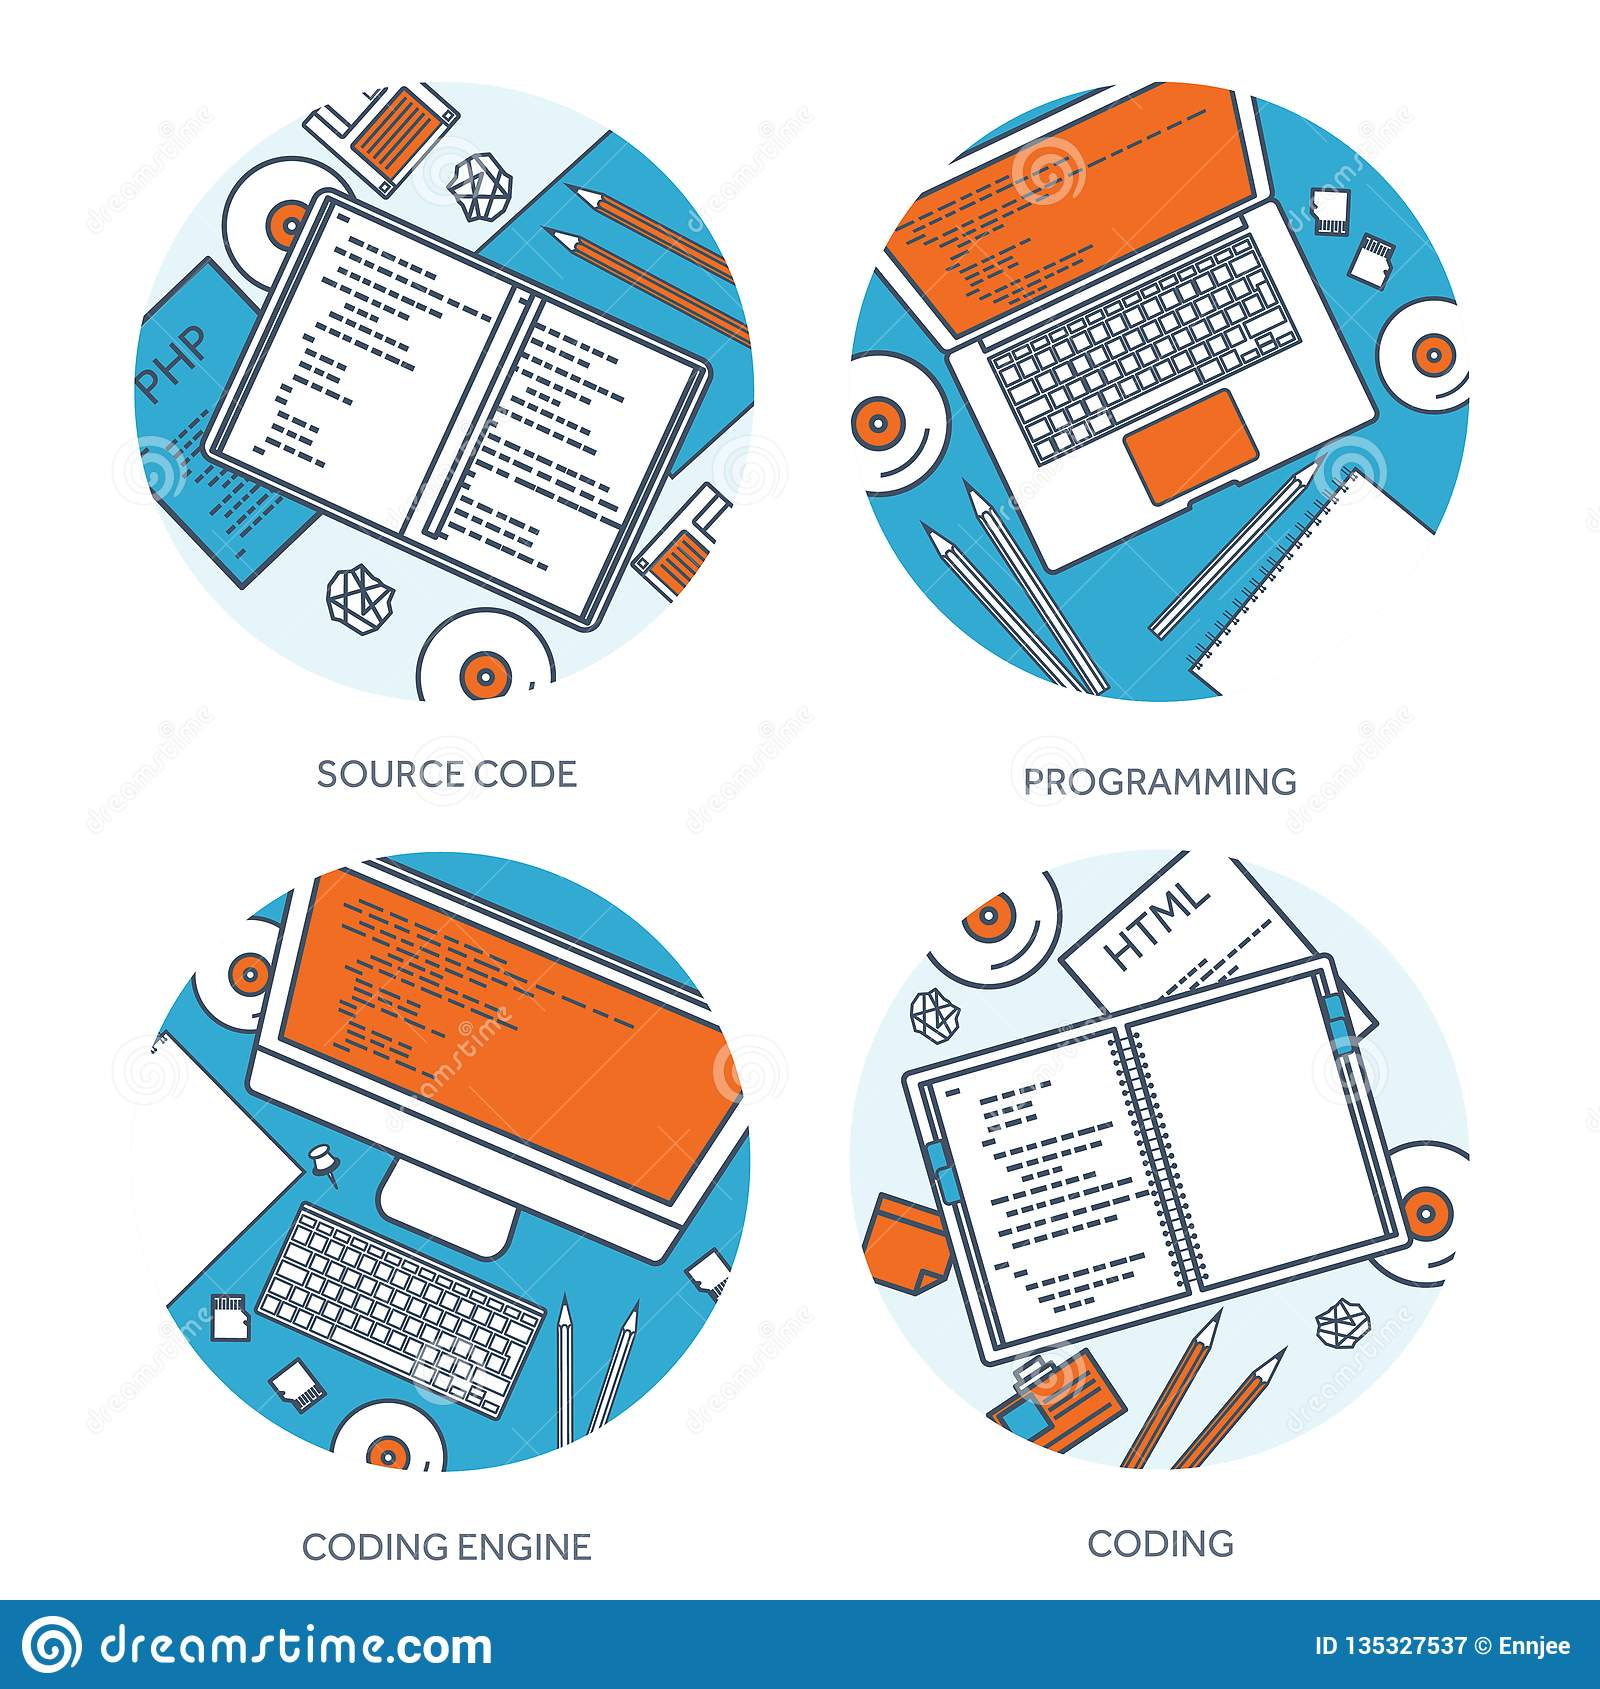 Lined programming,coding and SEO. Outline computing background. Code, hardware software. Web development. Search engine